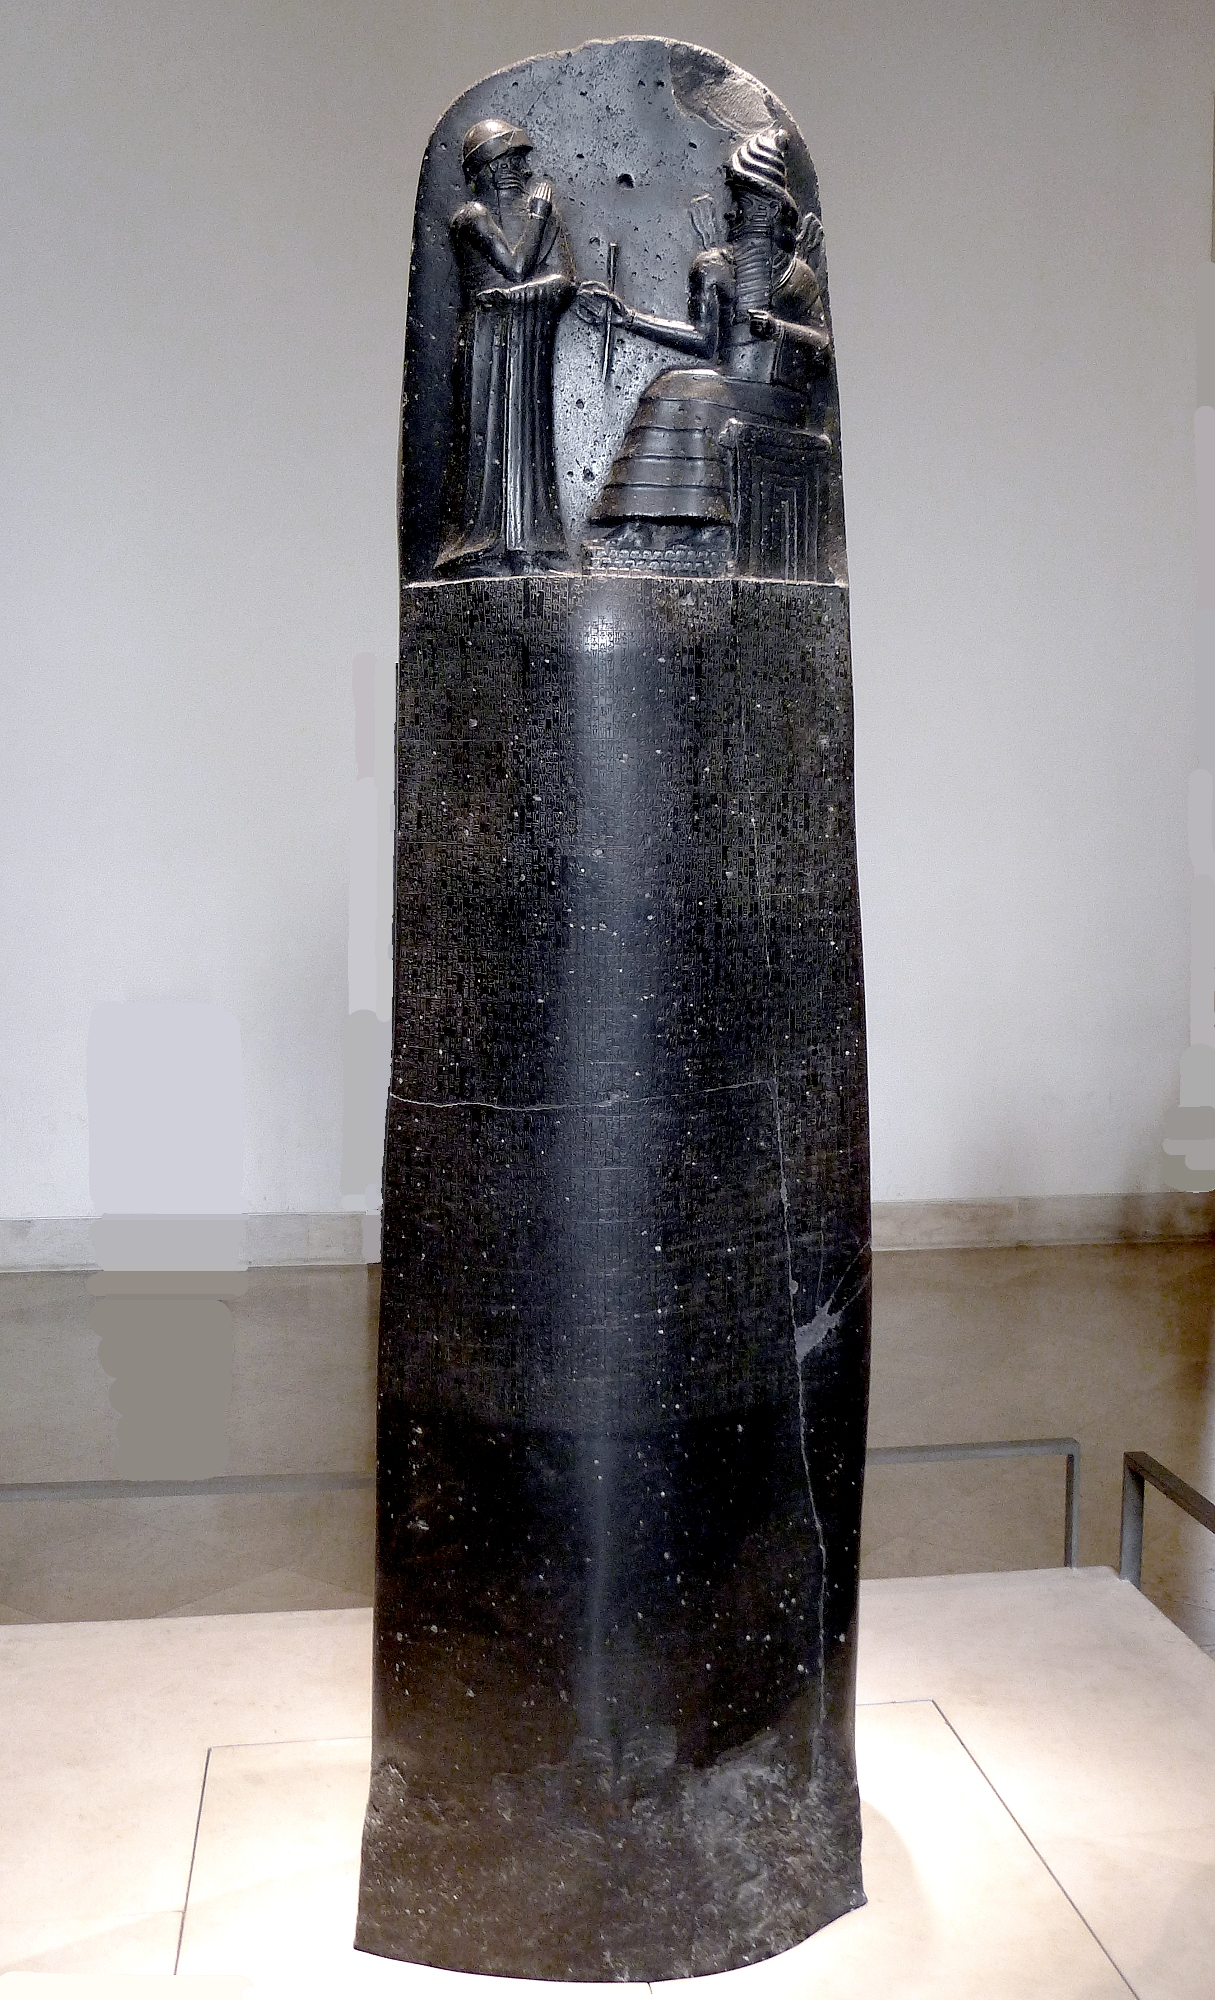 Archivo Historial del archivo Usos del archivo Uso global del archivo    Stele With Law Code Of Hammurabi